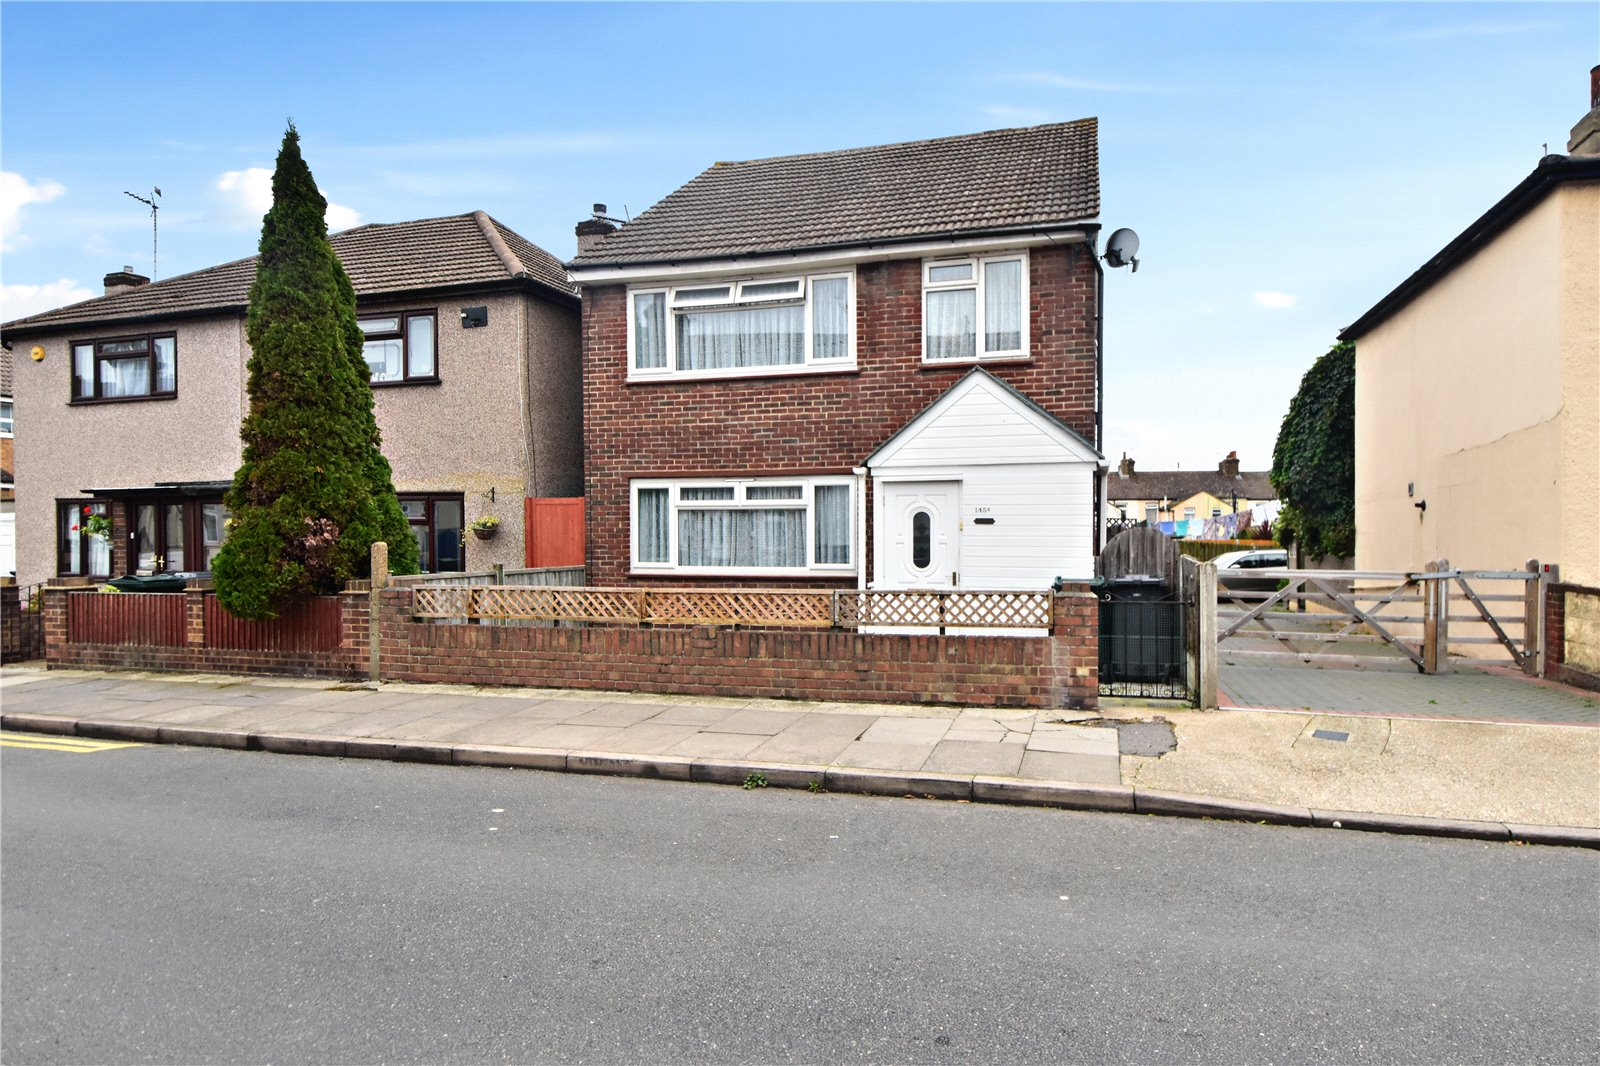 Church Road, Swanscombe, Kent, DA10